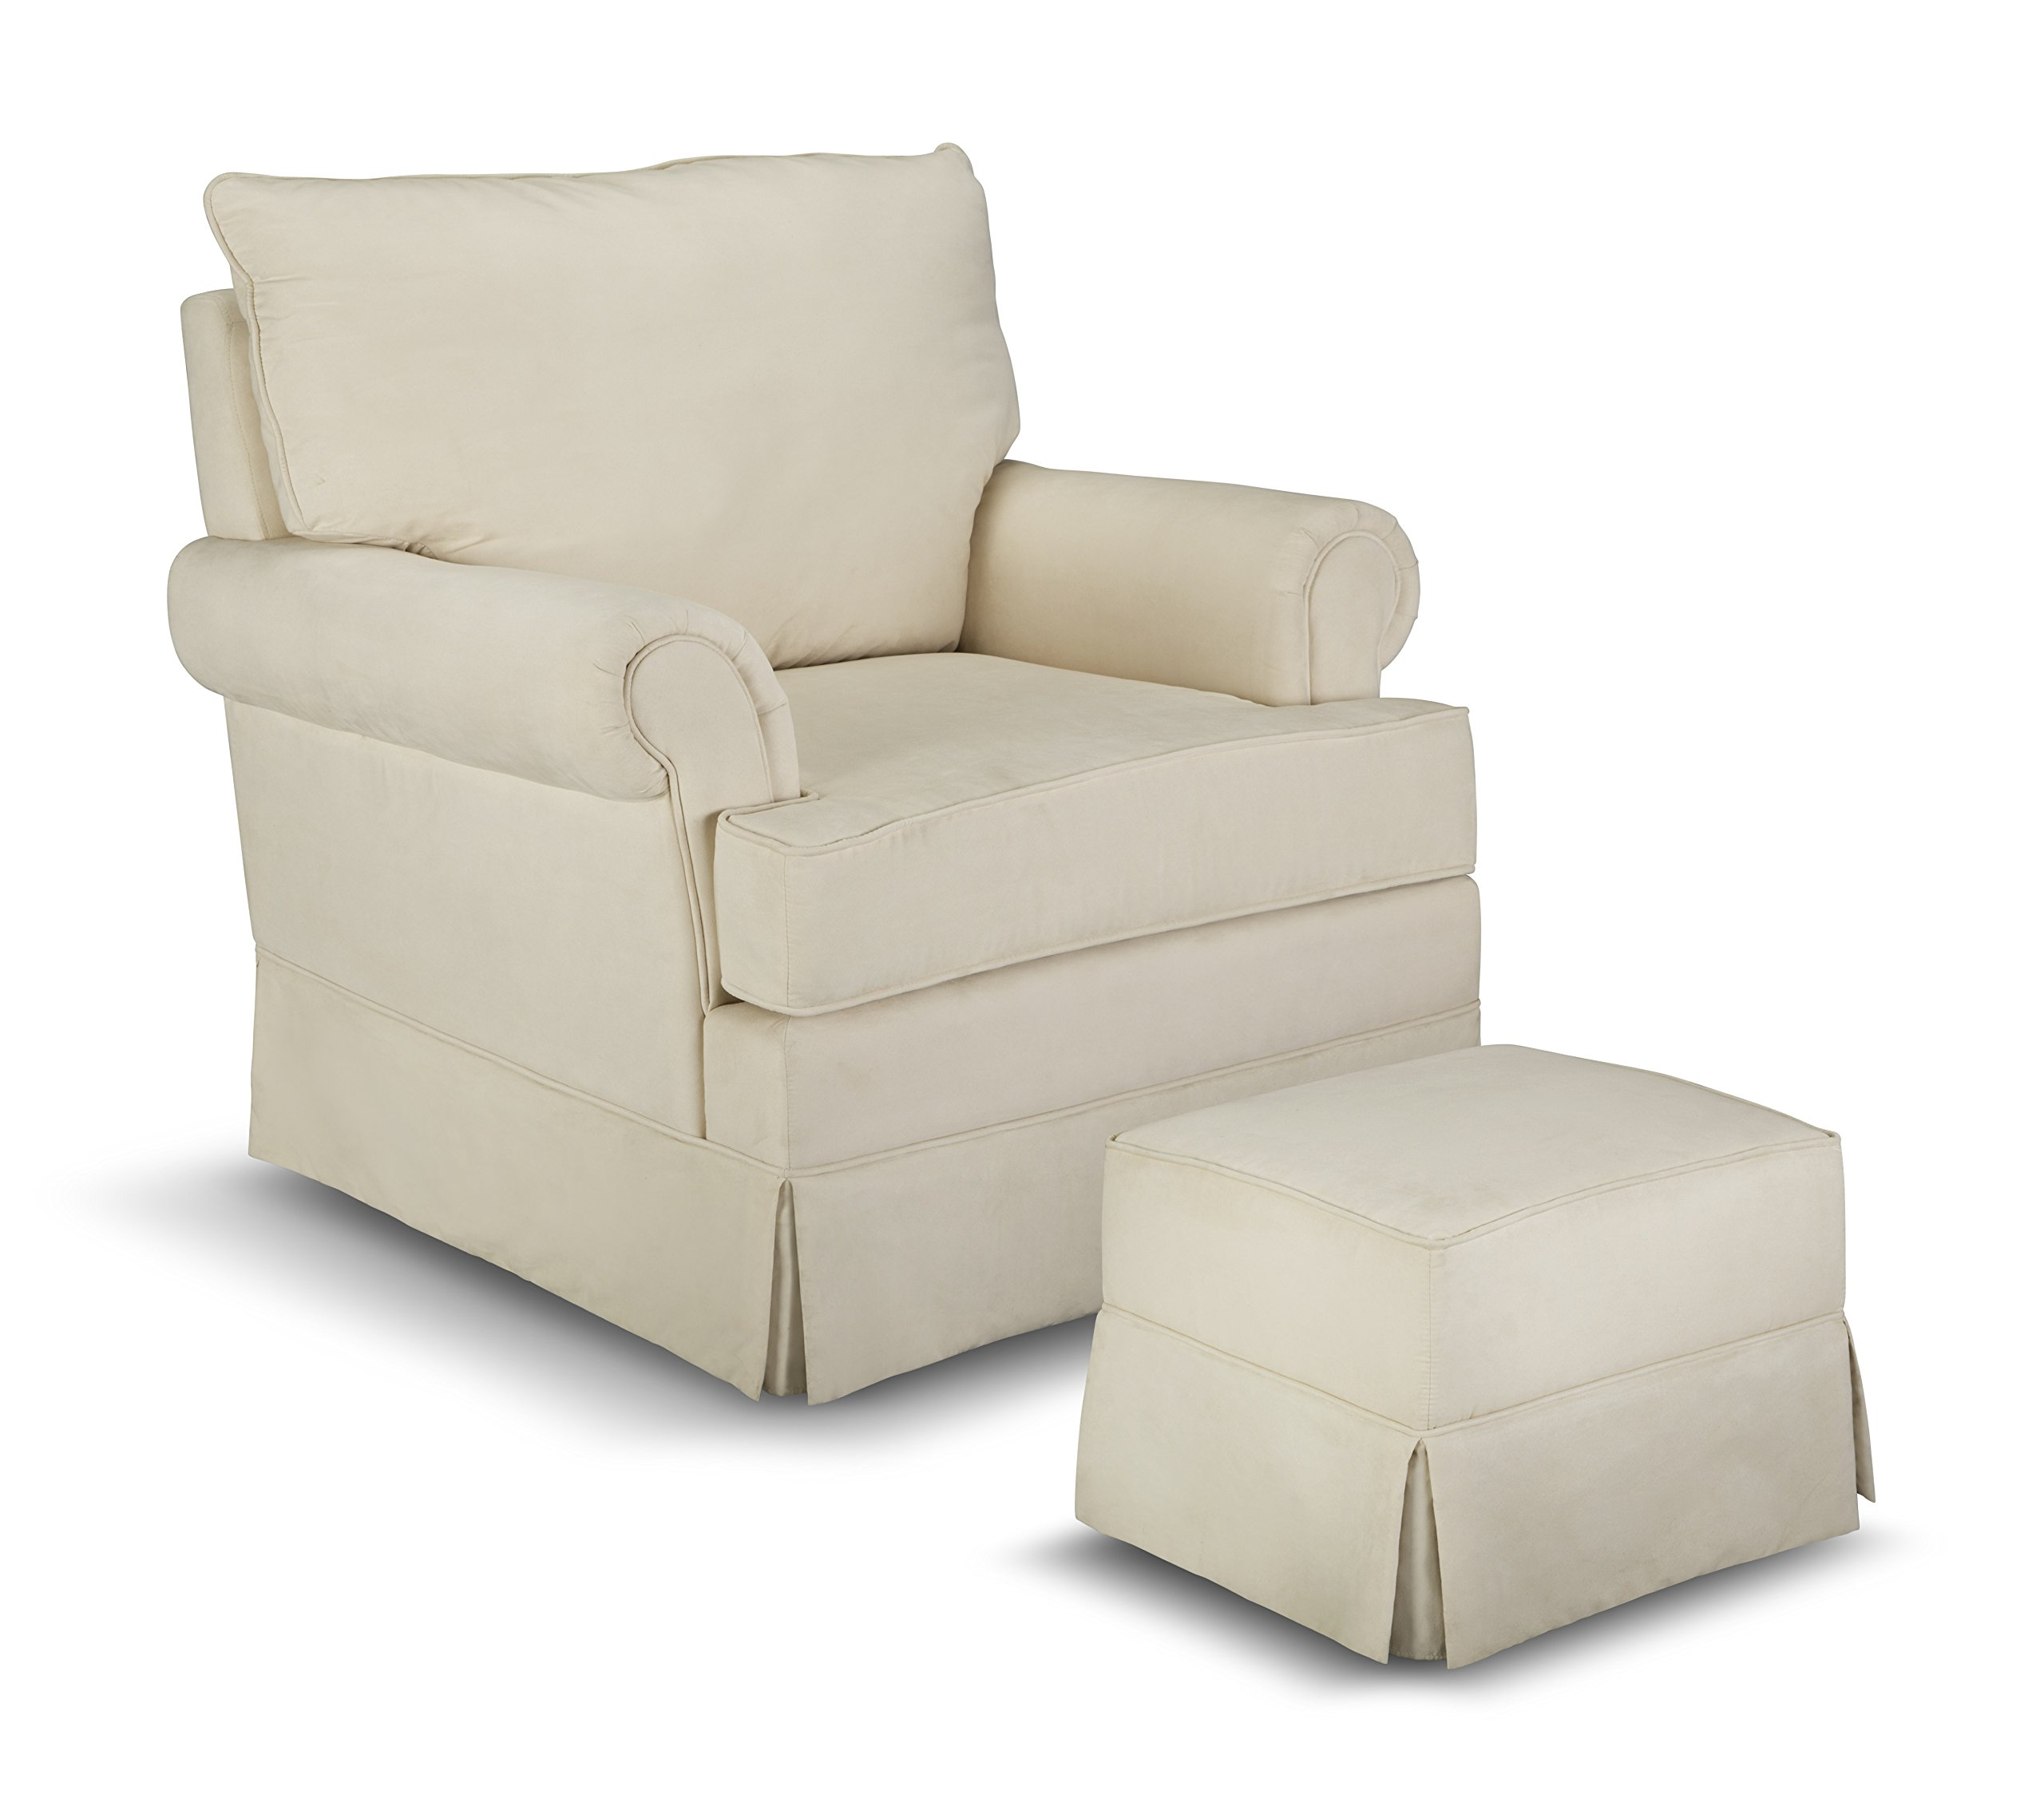 Thomasville Kids Grand Royale Upholstered Swivel Glider and Ottoman, Beige by Thomasville Kids